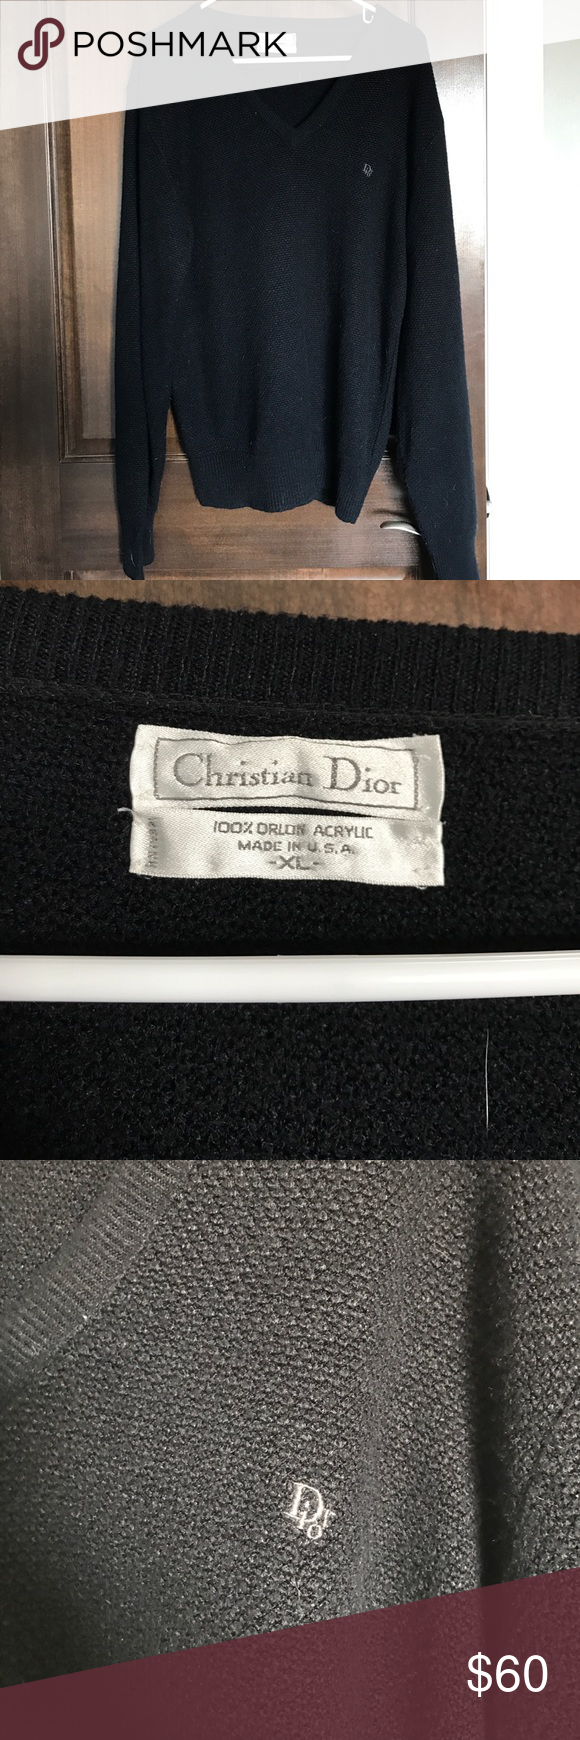 Men's Christian Dior v-neck sweater Beautiful Christian Dior v-neck sweater. In perfect condition-was a gift for my husband who didn't end up liking the way it fit and only worn 2 times. Christian Dior Sweaters V-Neck